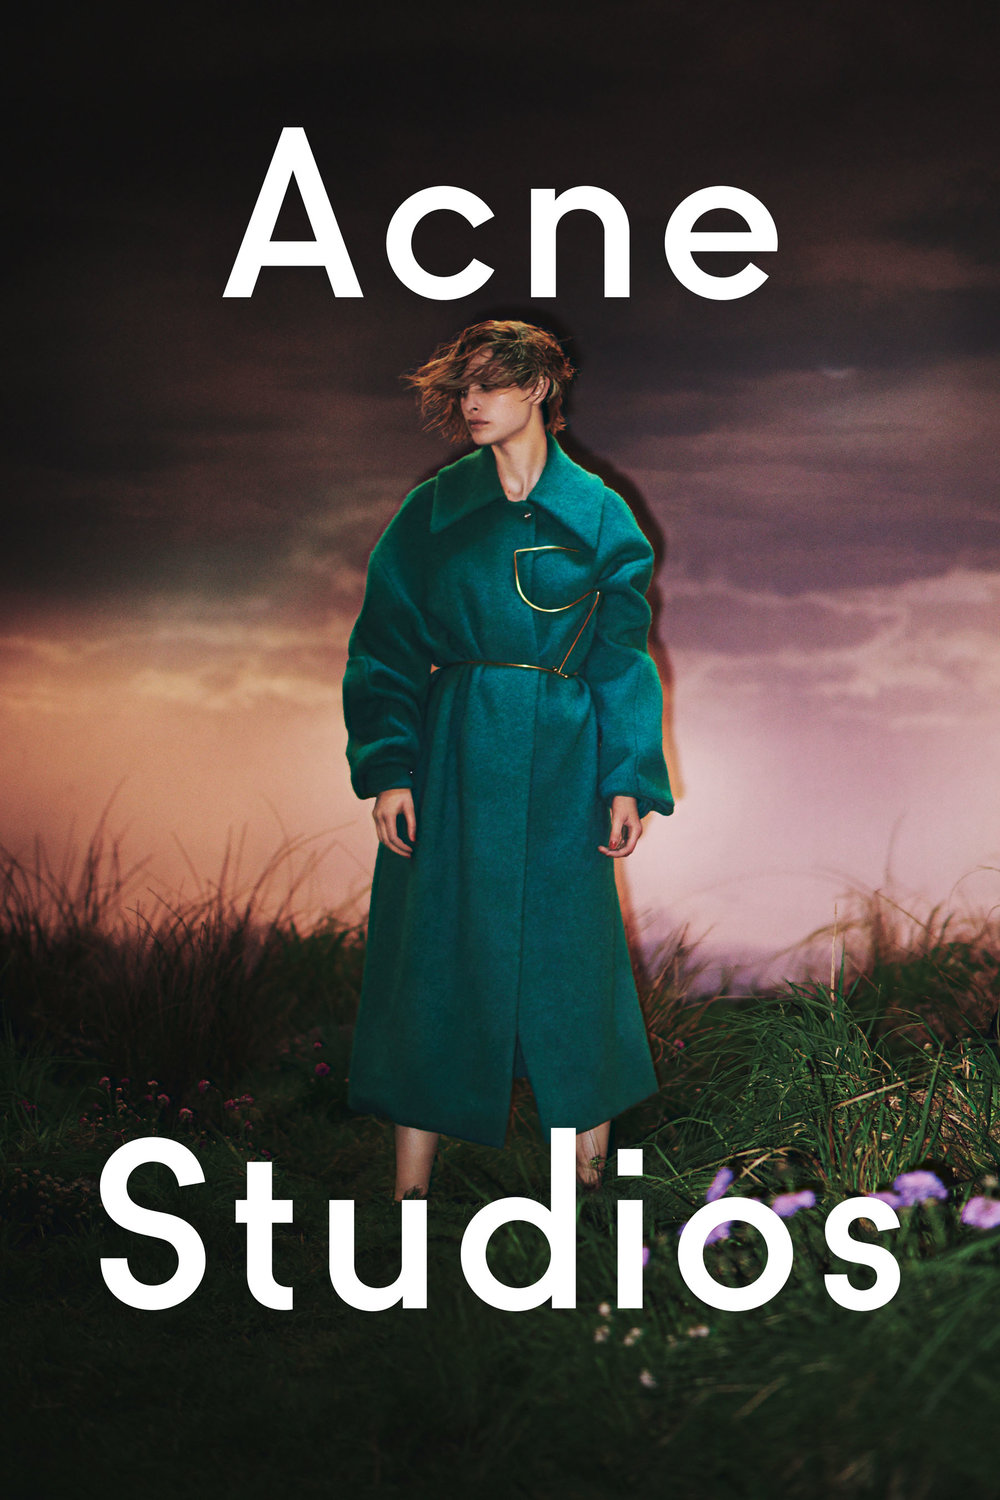 David Sims On a Classical Fashion Campaign for Acne Studios - Anniversary Magazine